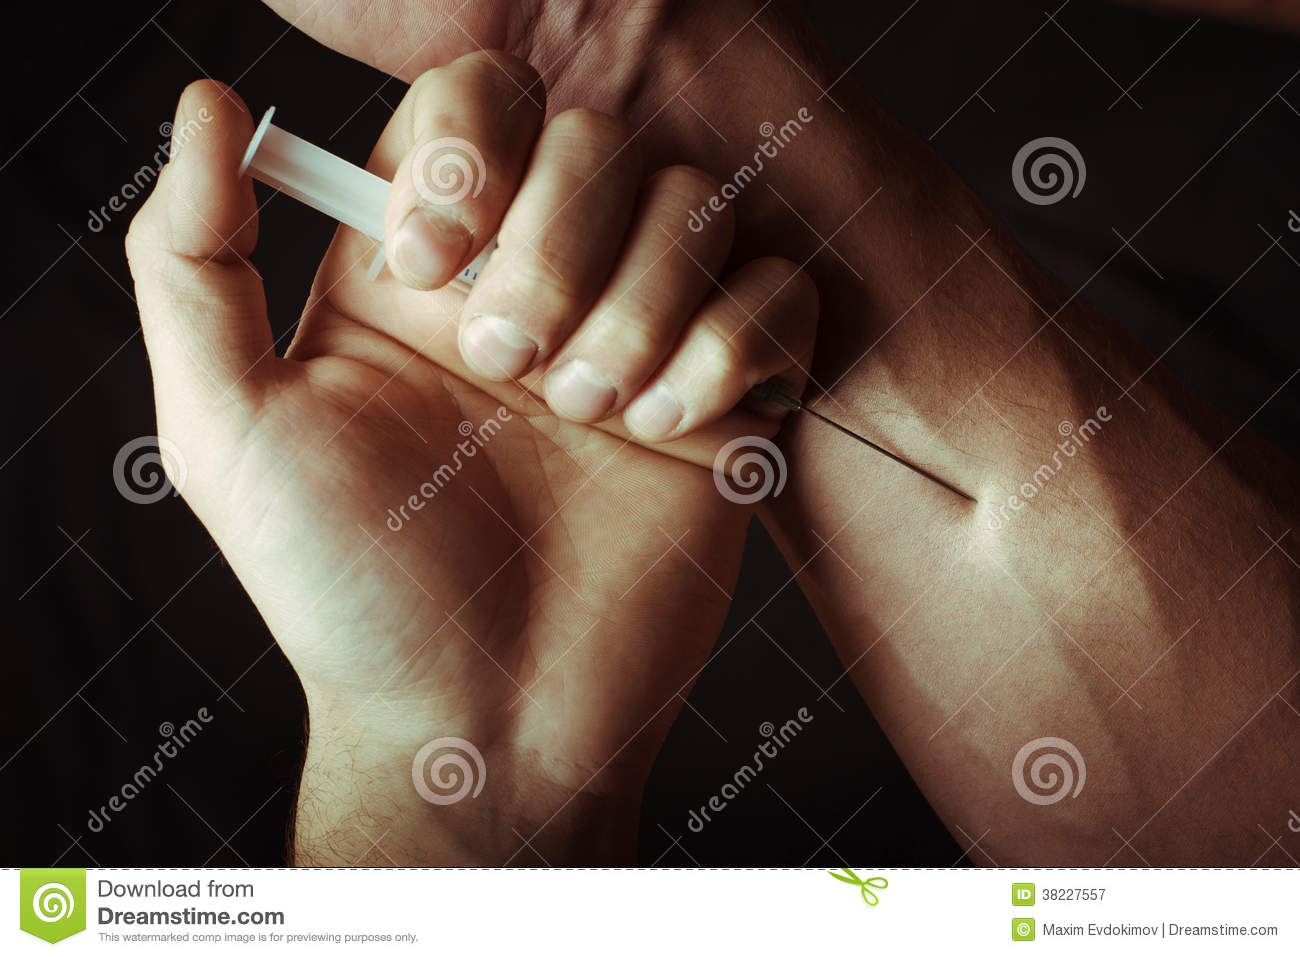 Hand with heroin syringe